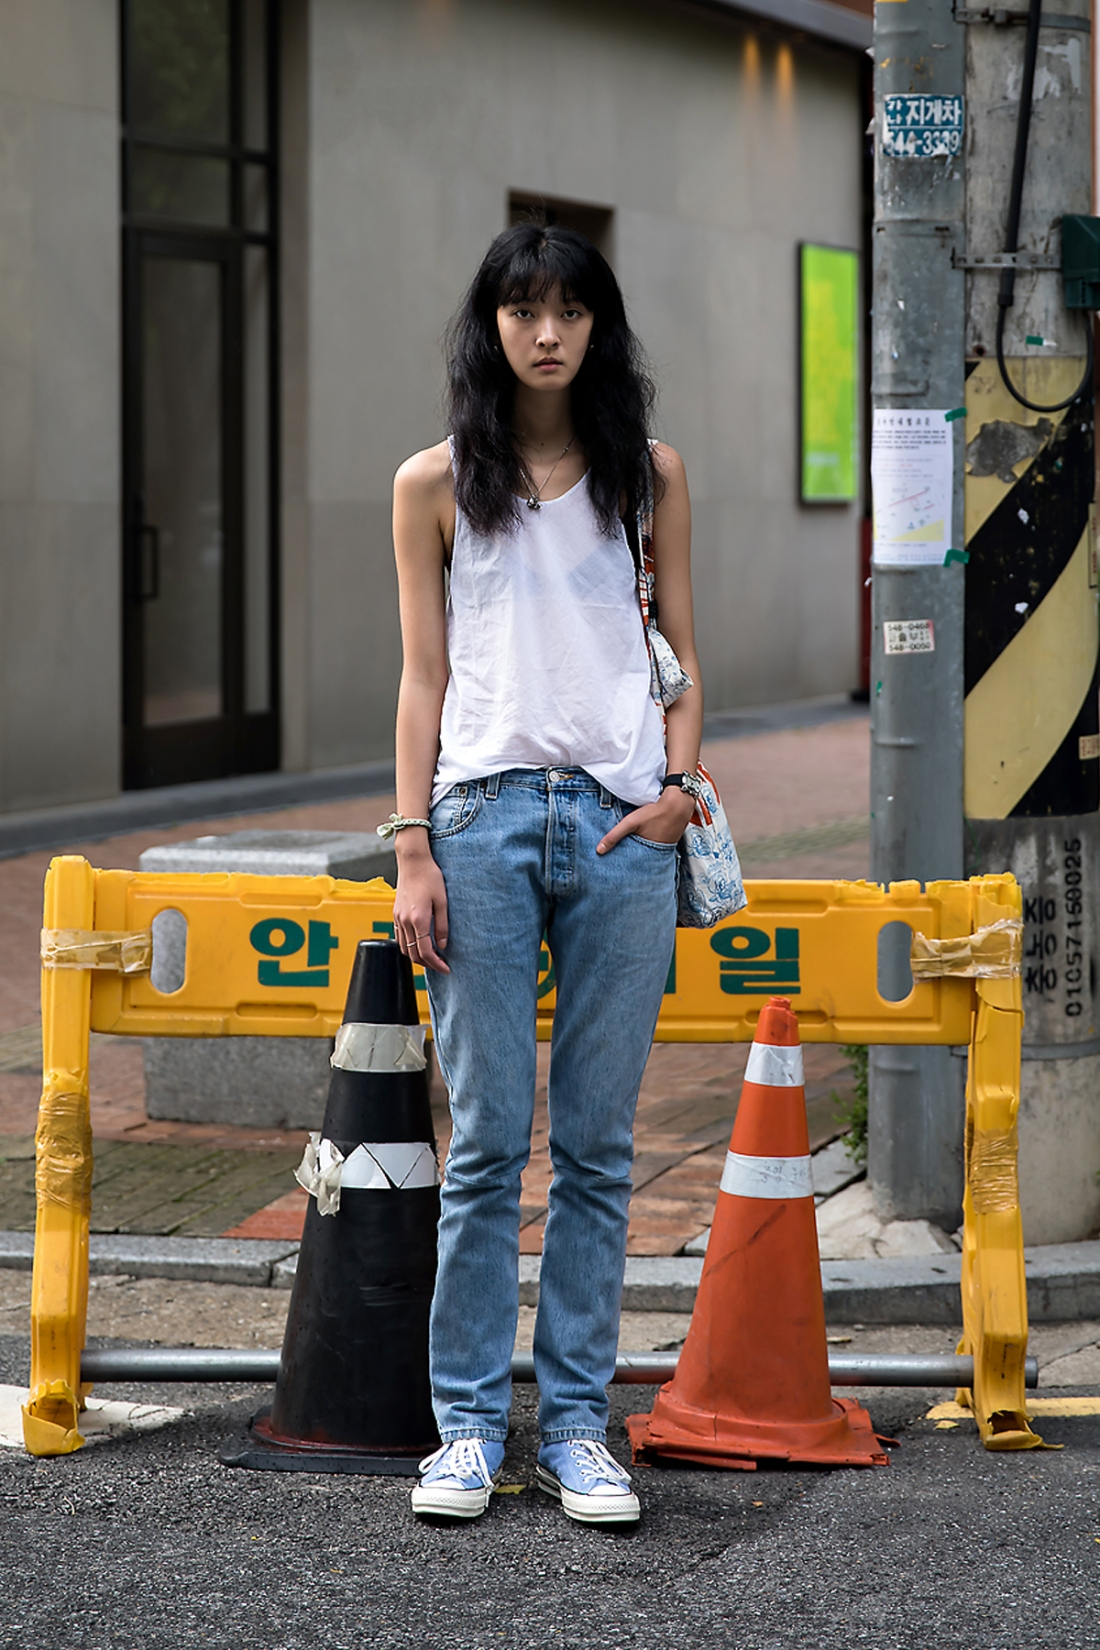 Kang So-young, Street Fashion 2017 in Seoul.jpg